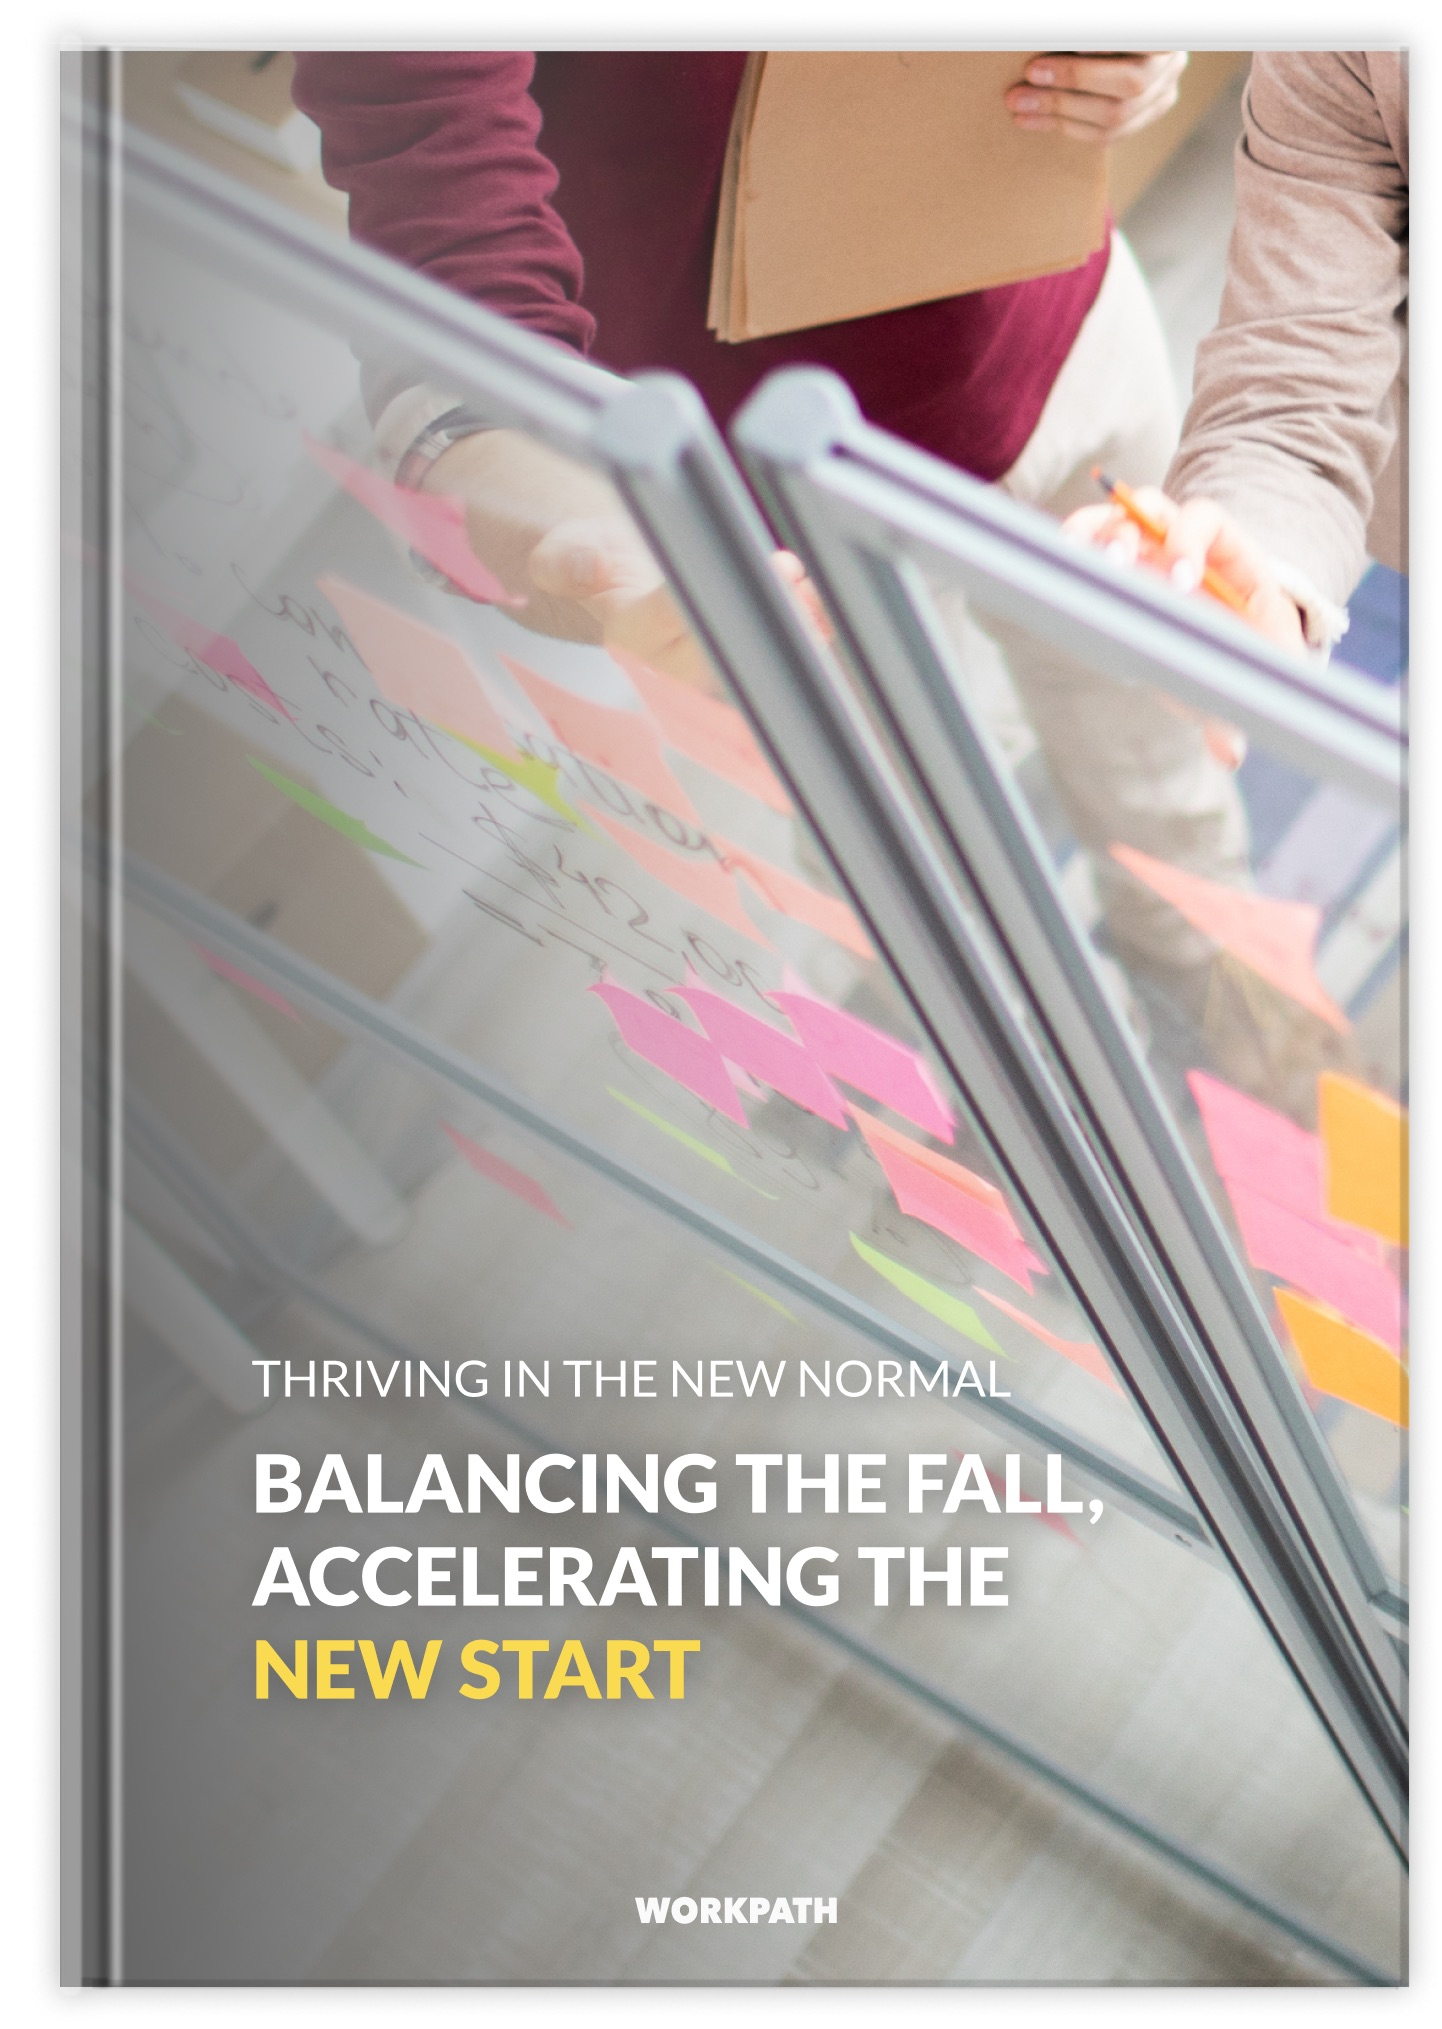 Balancing the Fall: How to thrive in a new normal